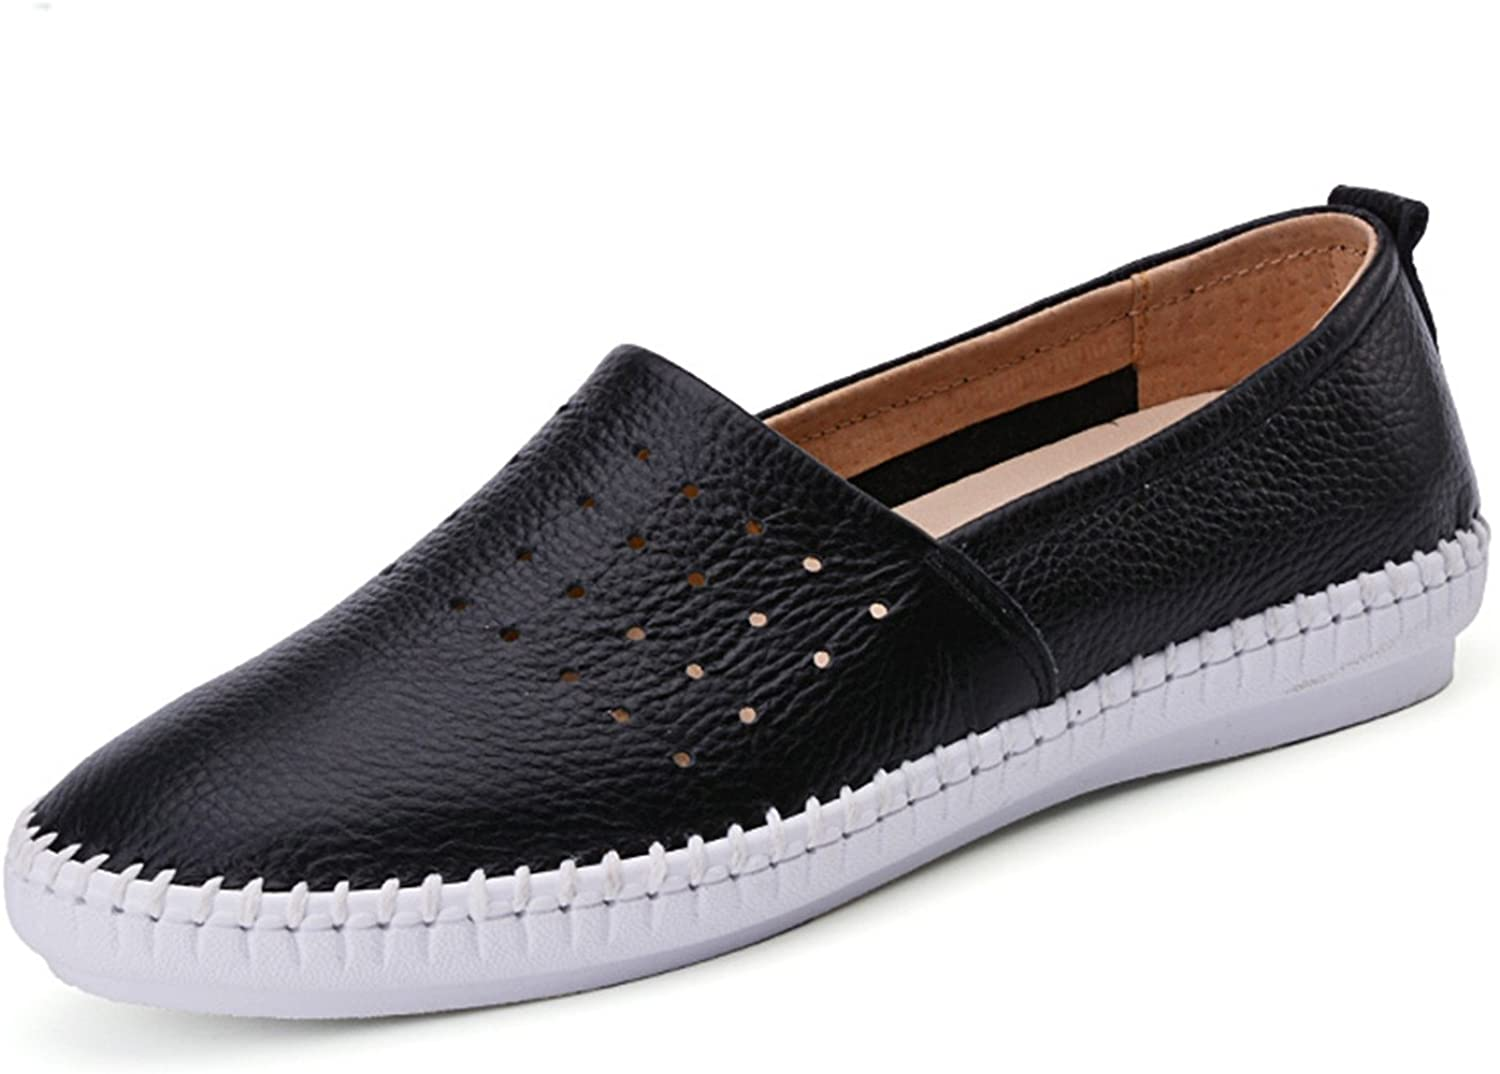 Dahanyi Stylish Women Genuine Leather shoes Slip On Flats Handmade shoes Loafers Mocassin Flat Women's shoes